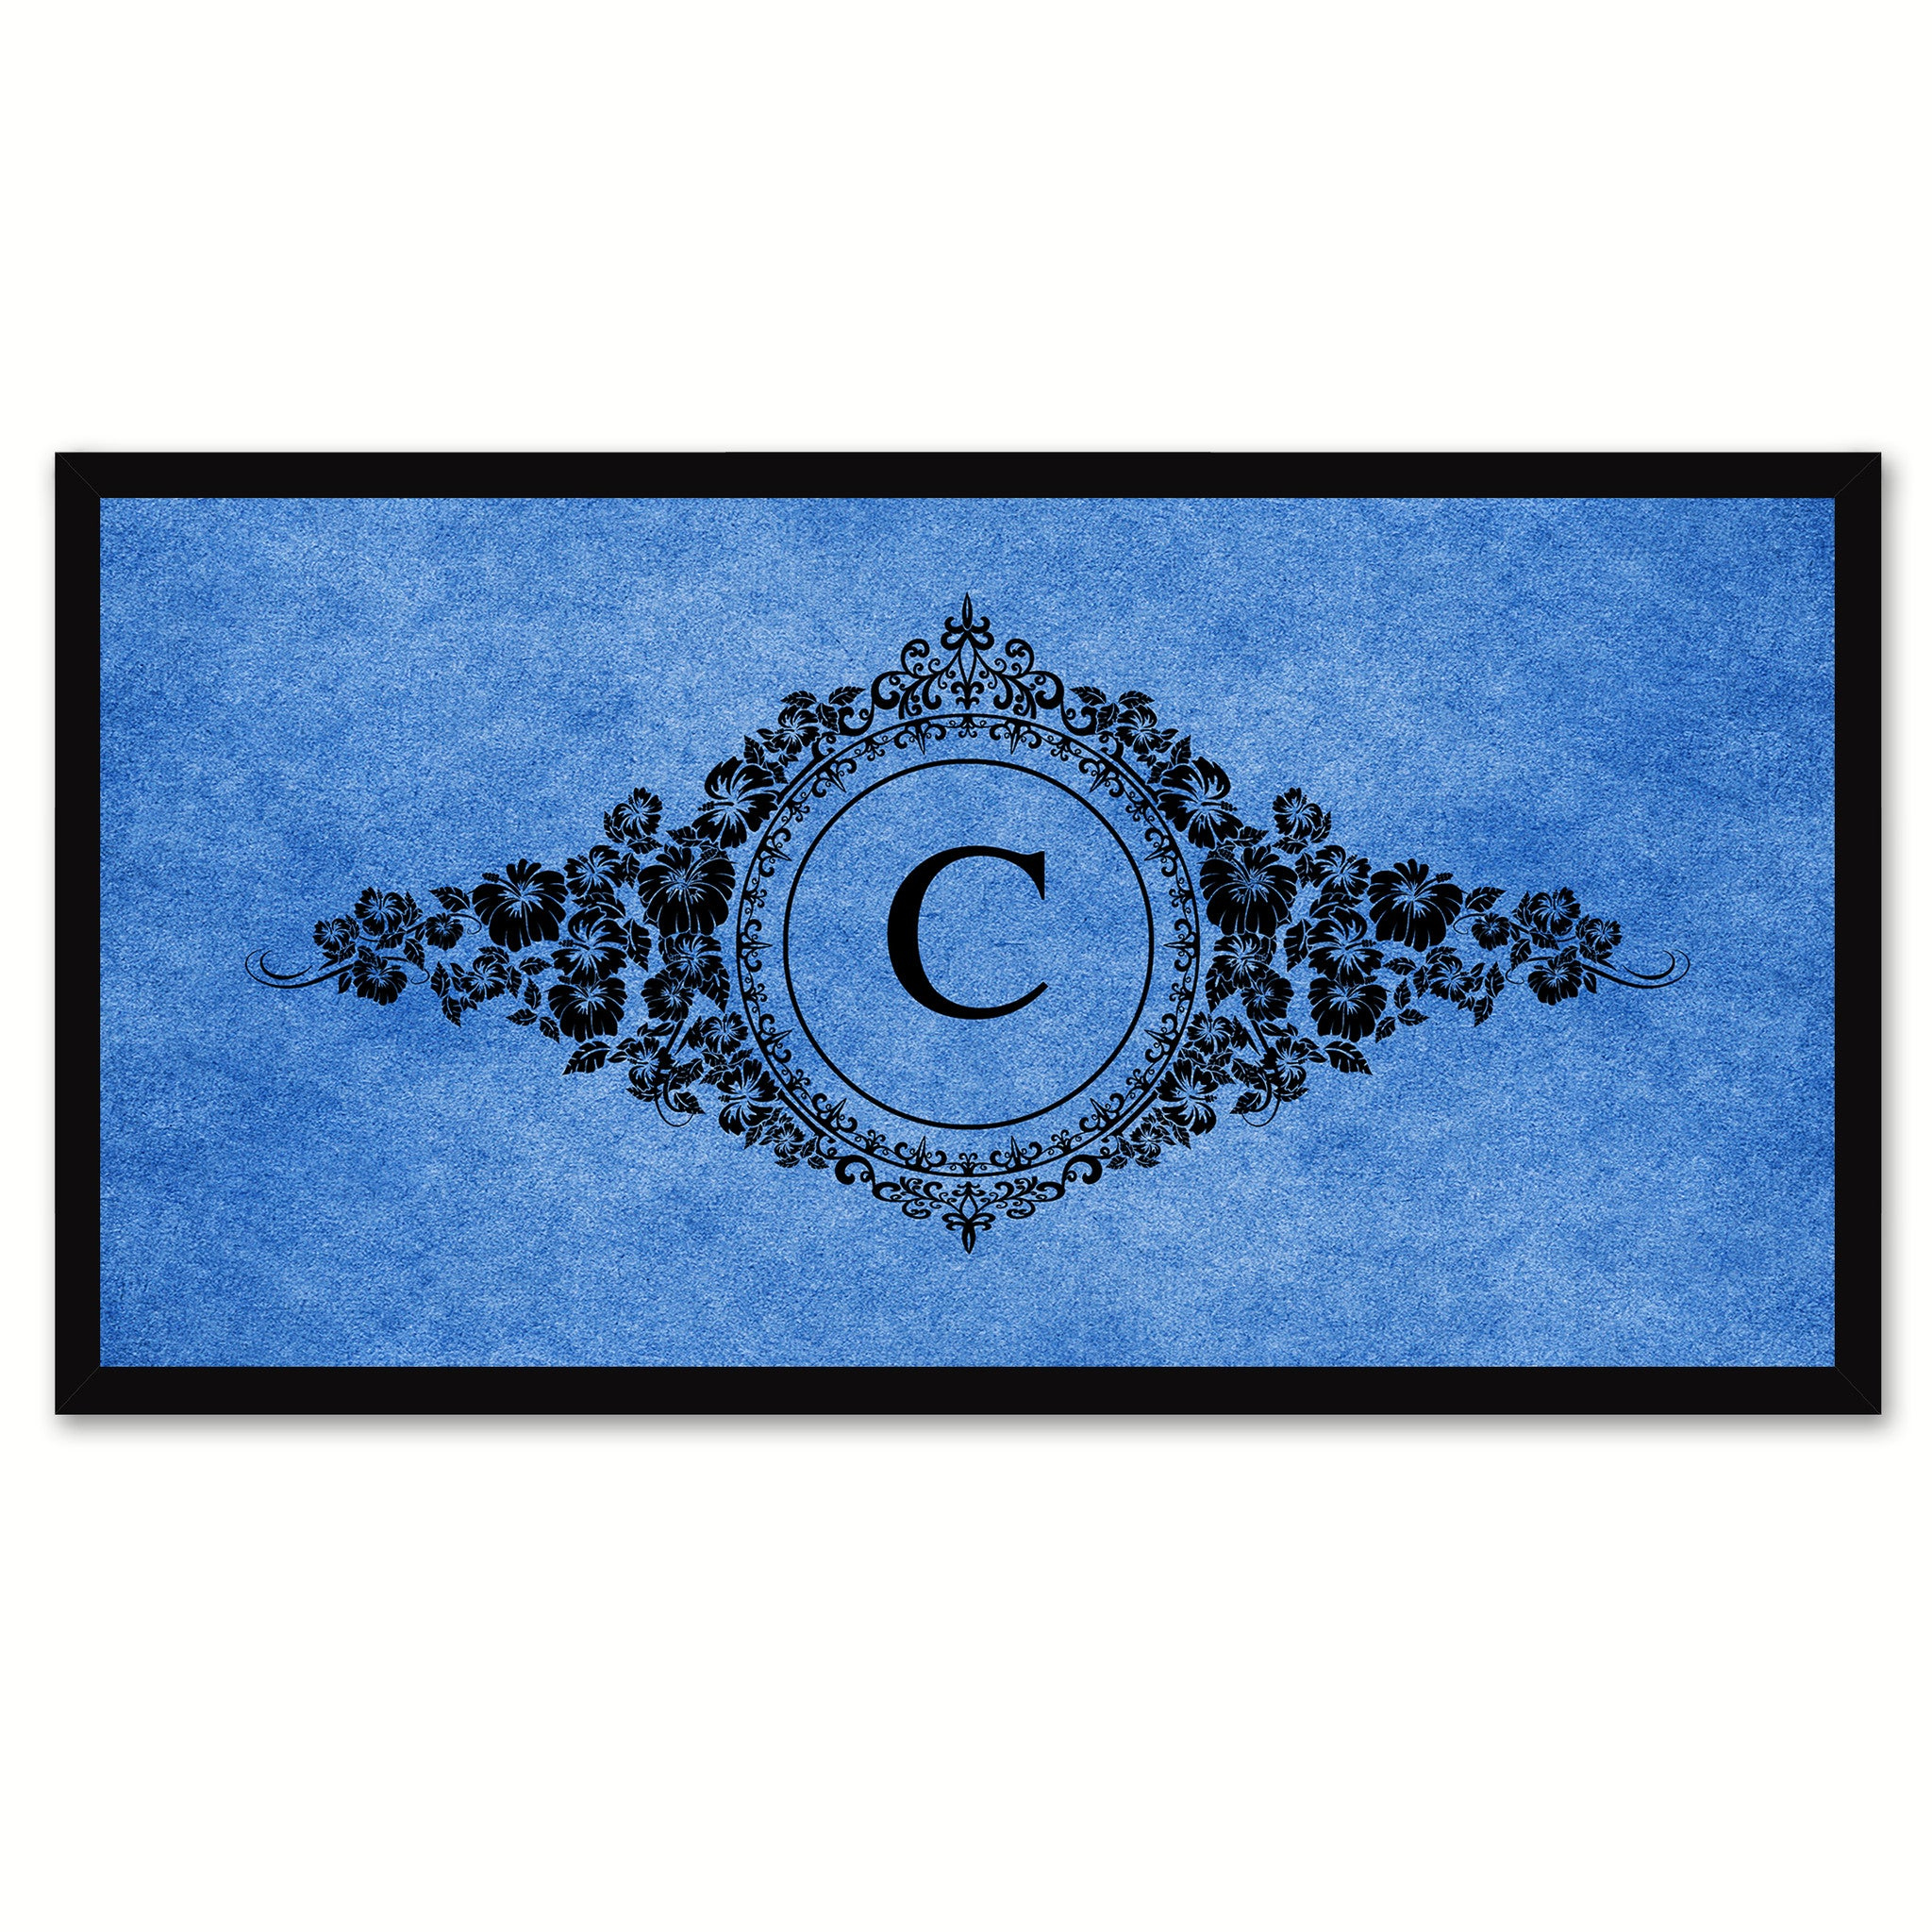 Alphabet Letter C Blue Canvas Print, Black Custom Frame